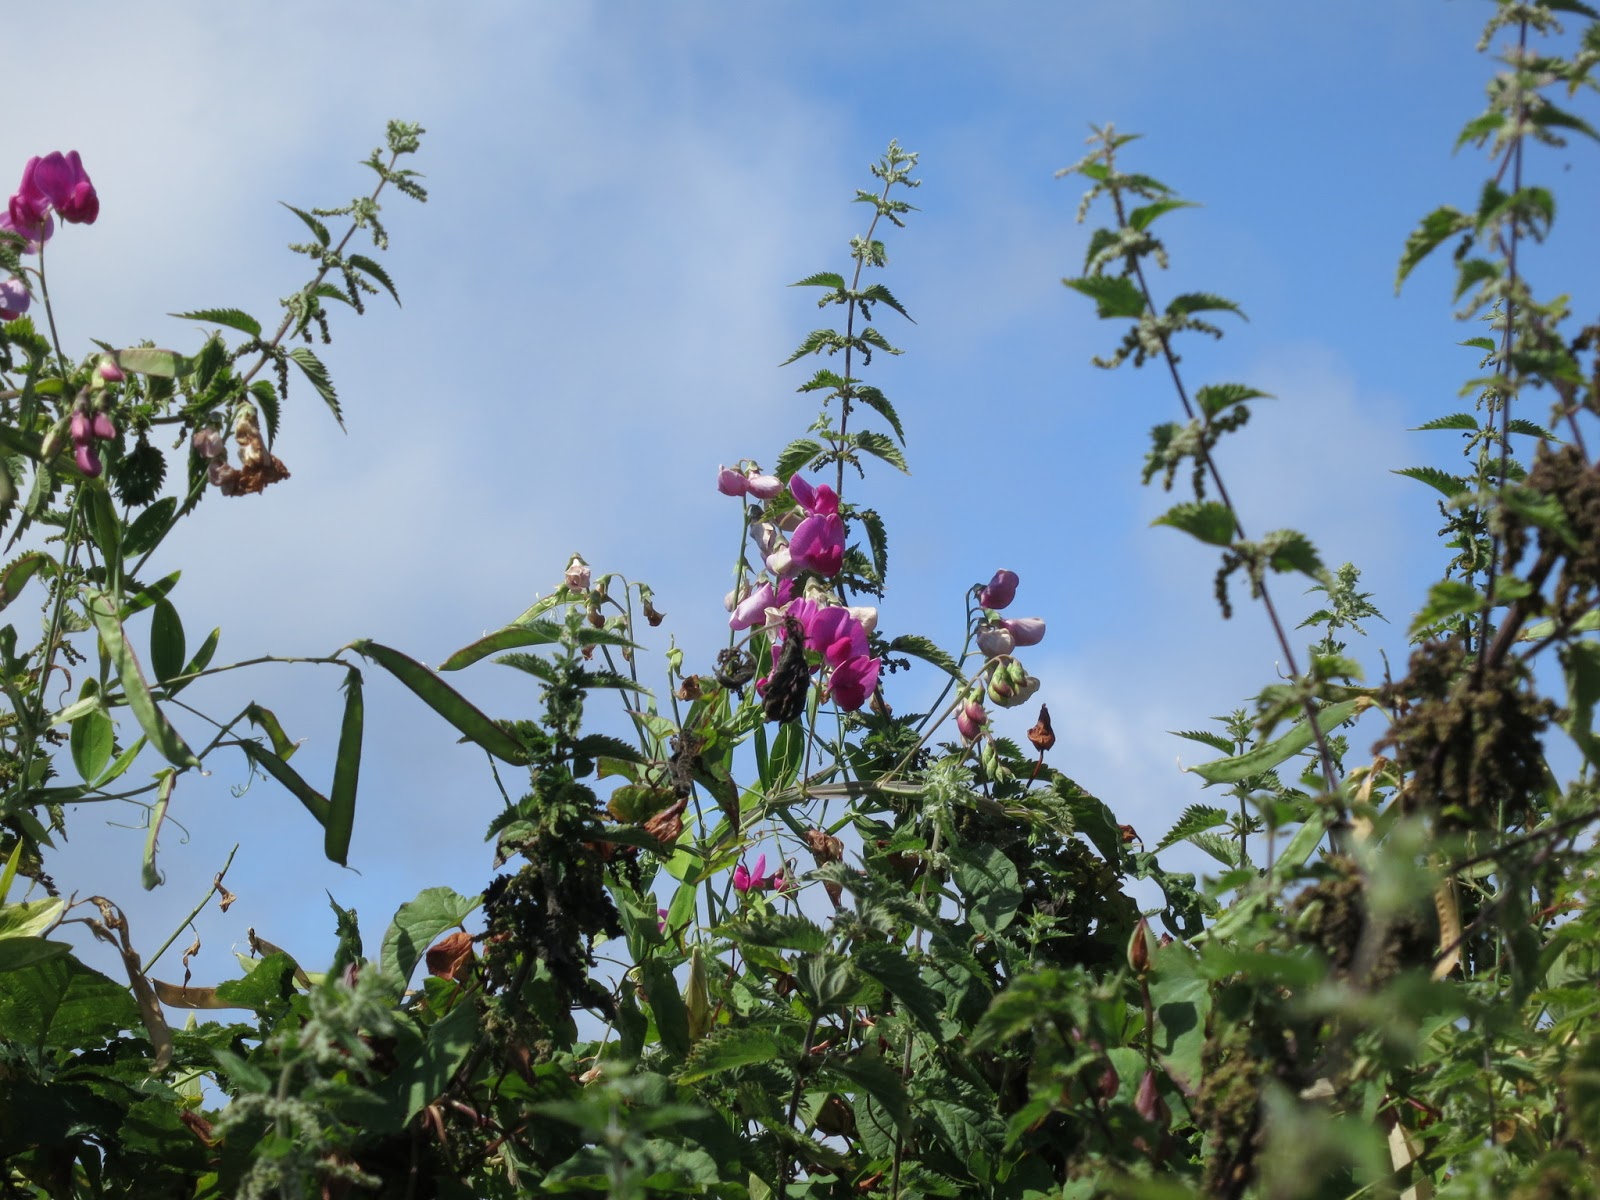 Purple sweet pea flowers tangled with flowering nettles